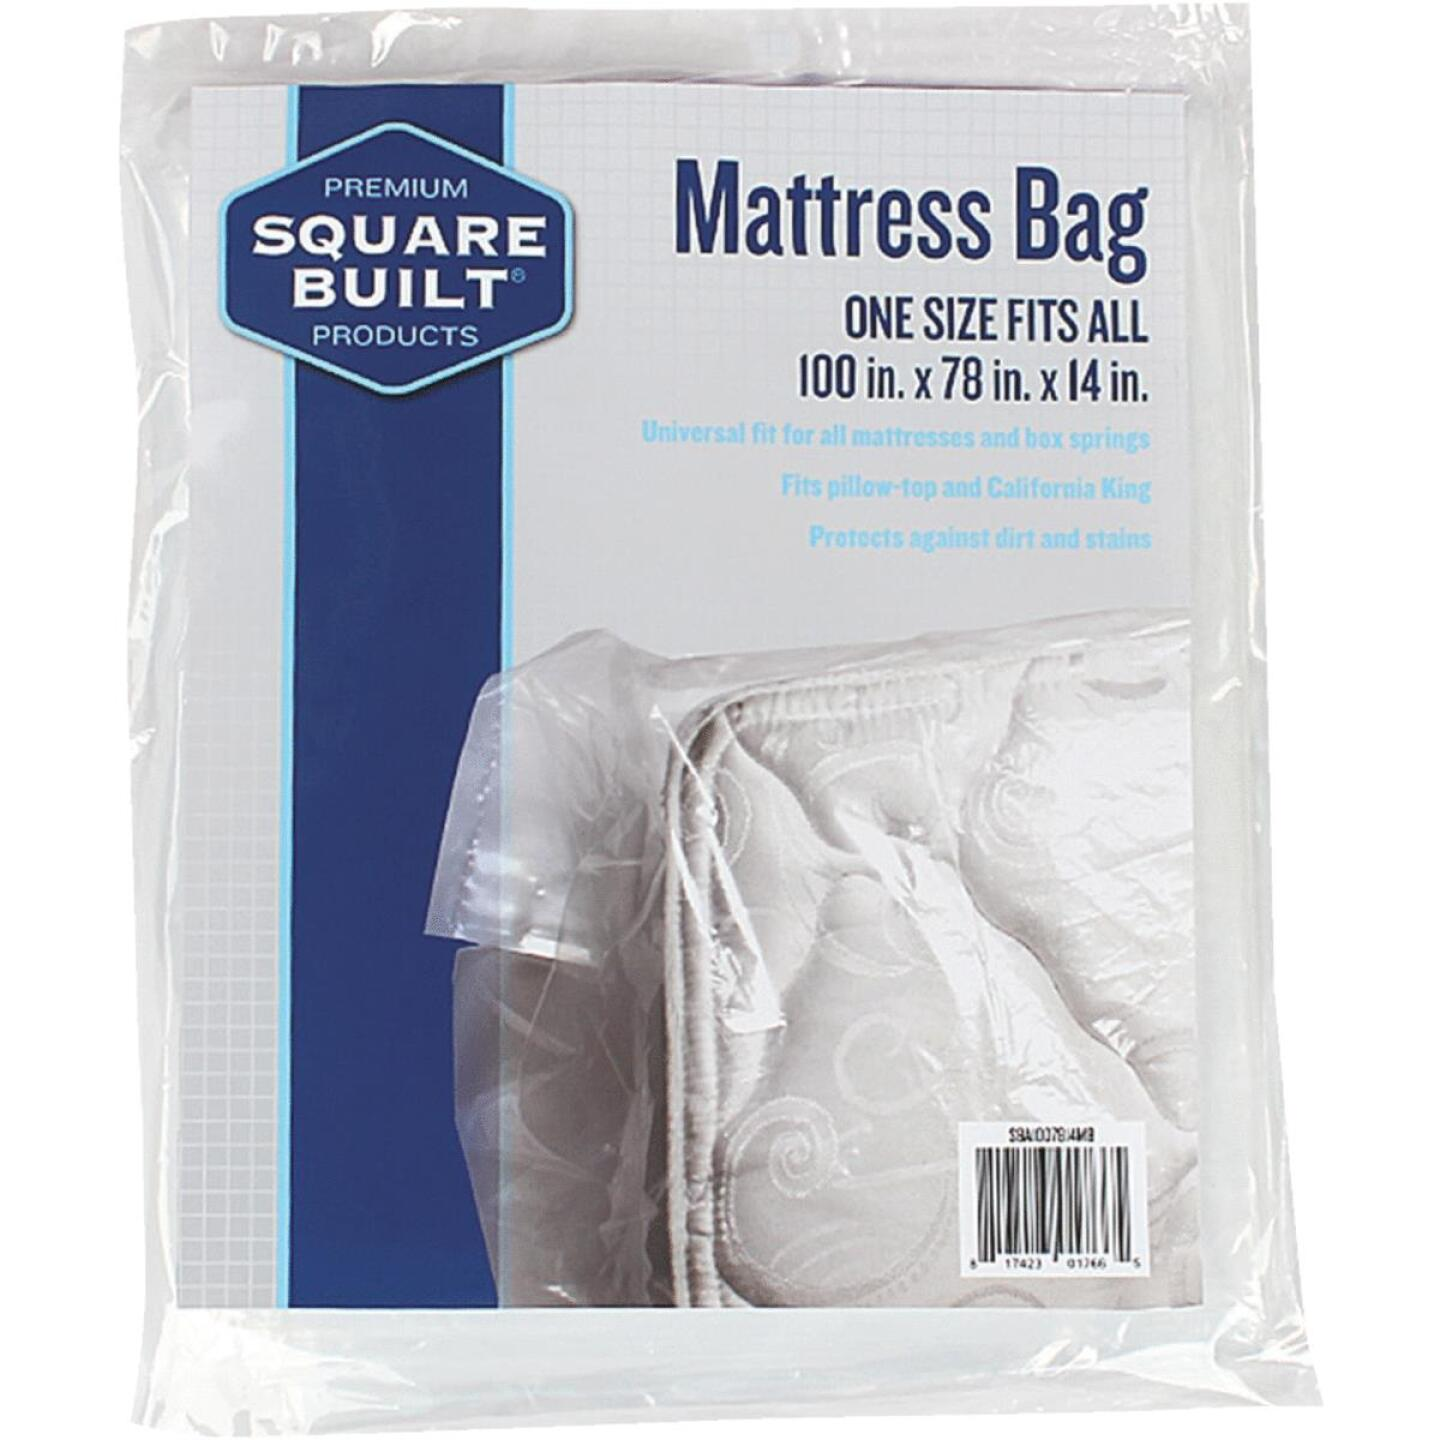 Square Built One Size Fits All Mattress Bag Image 1